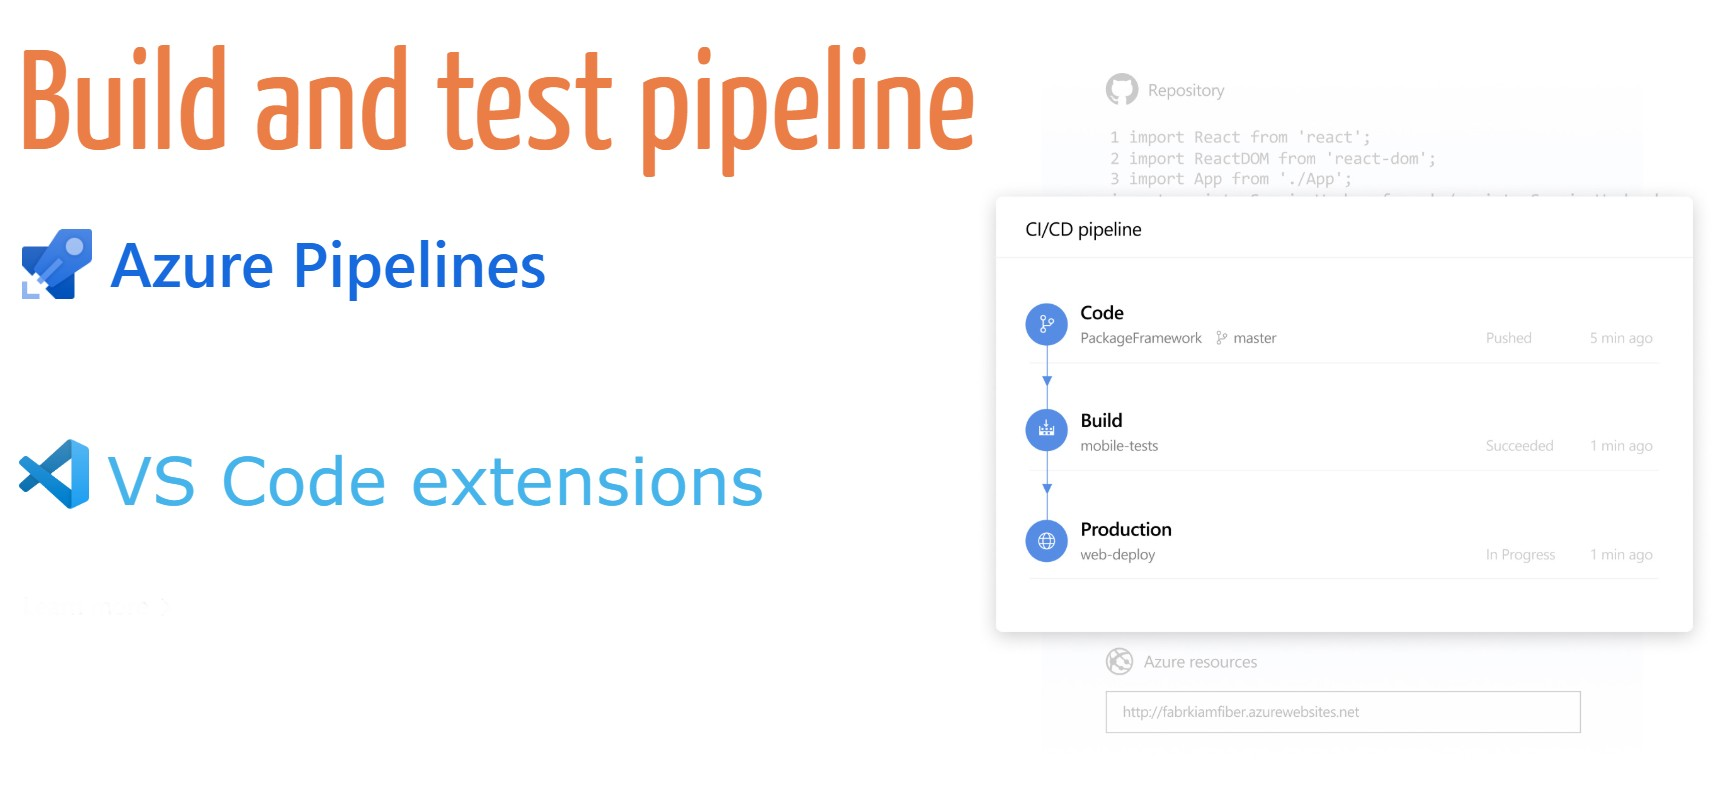 Build a CD Azure pipeline for your VS Code extension